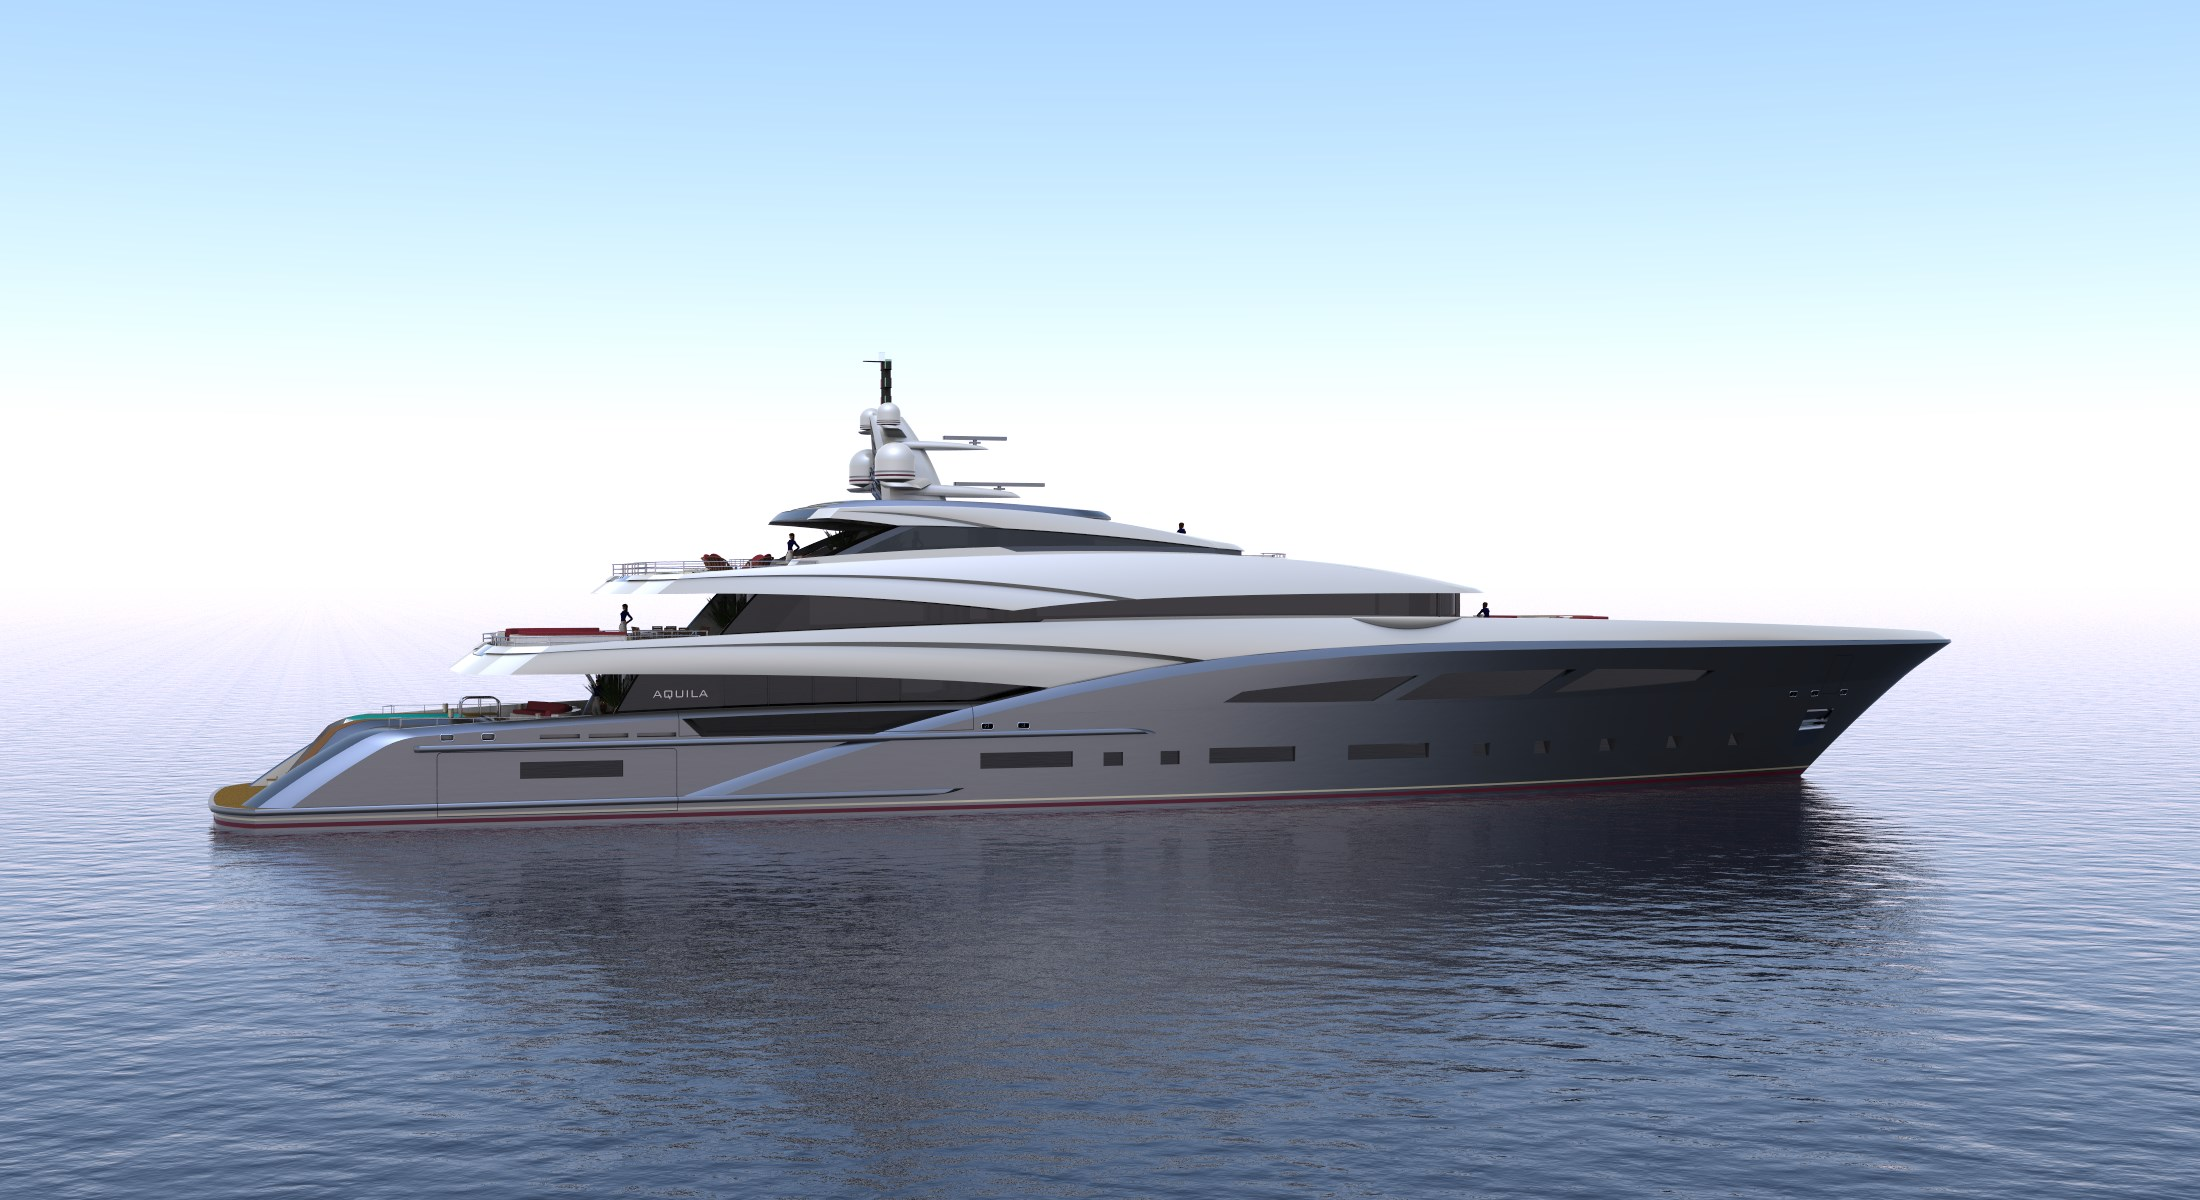 AQUILA 72M specs with detailed specification and builder summary